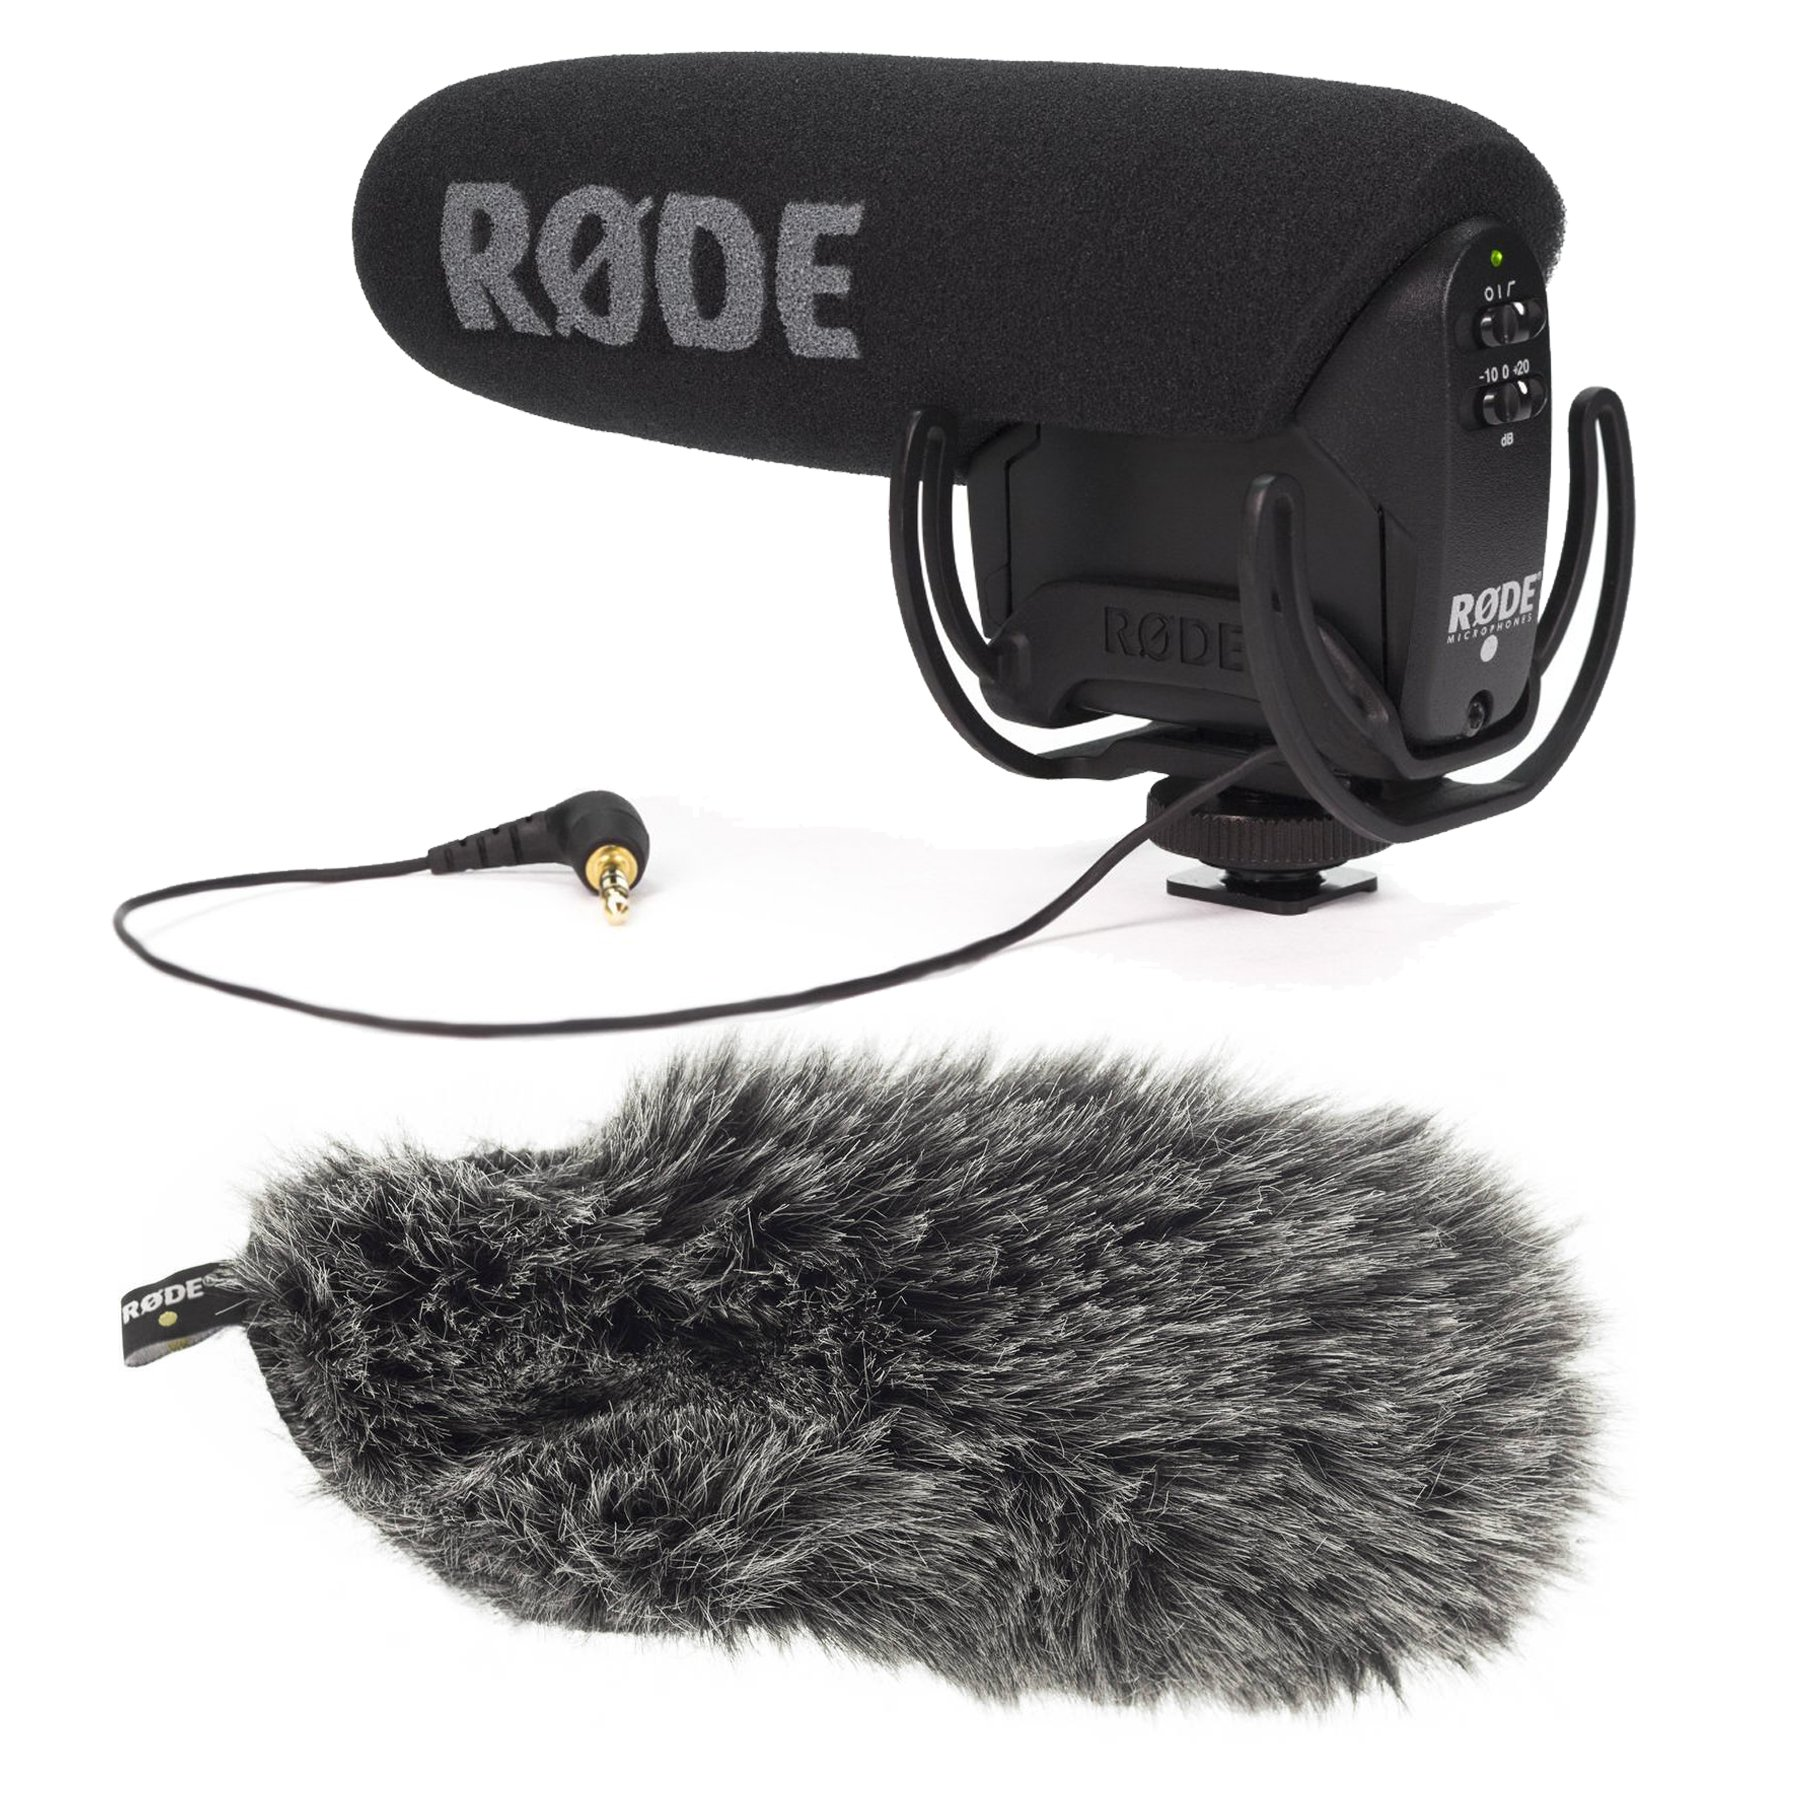 Rode VideoMic Pro Microphone with DDC-VMPR Deadcat Furry Windshield